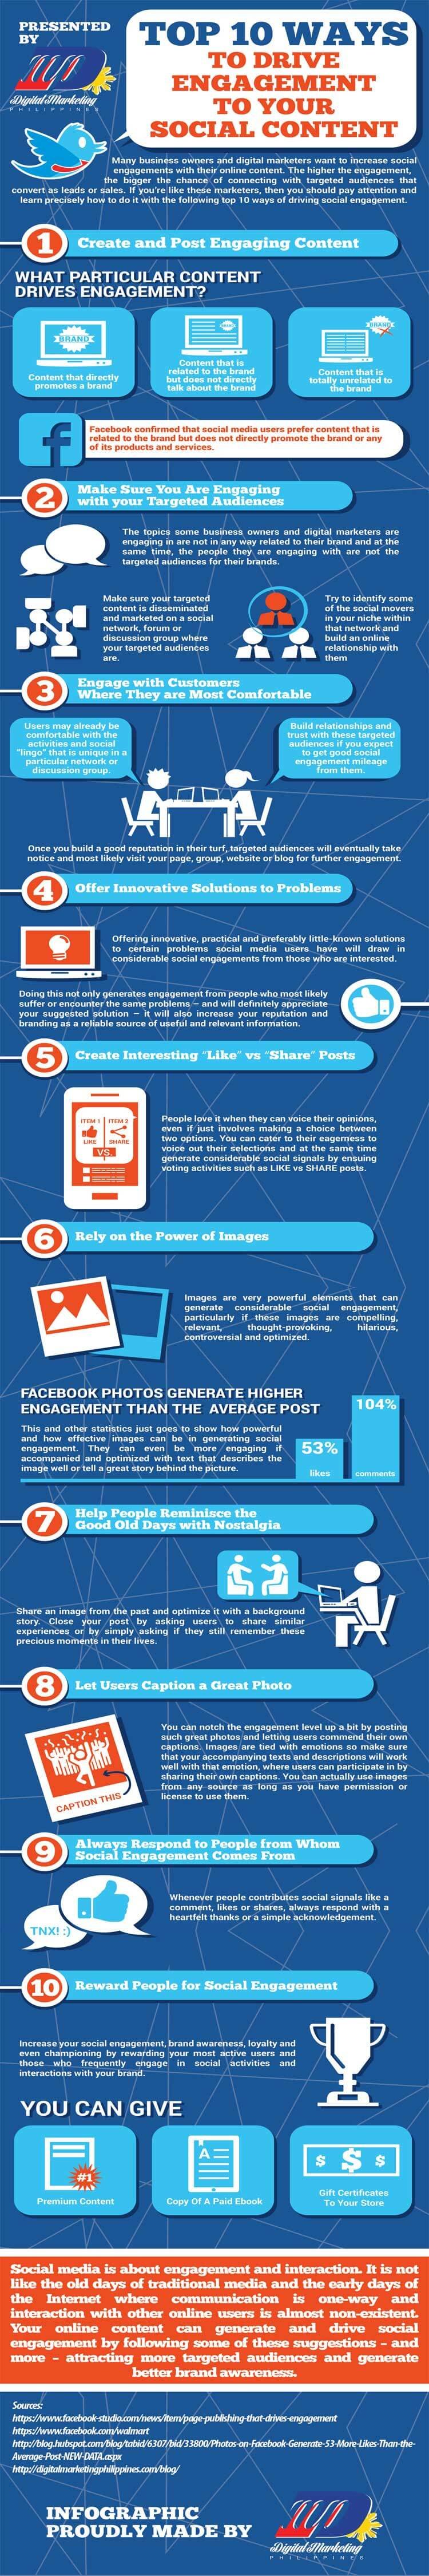 Top-10-Ways-to-Drive-Engagement-to-Your-Social-Content